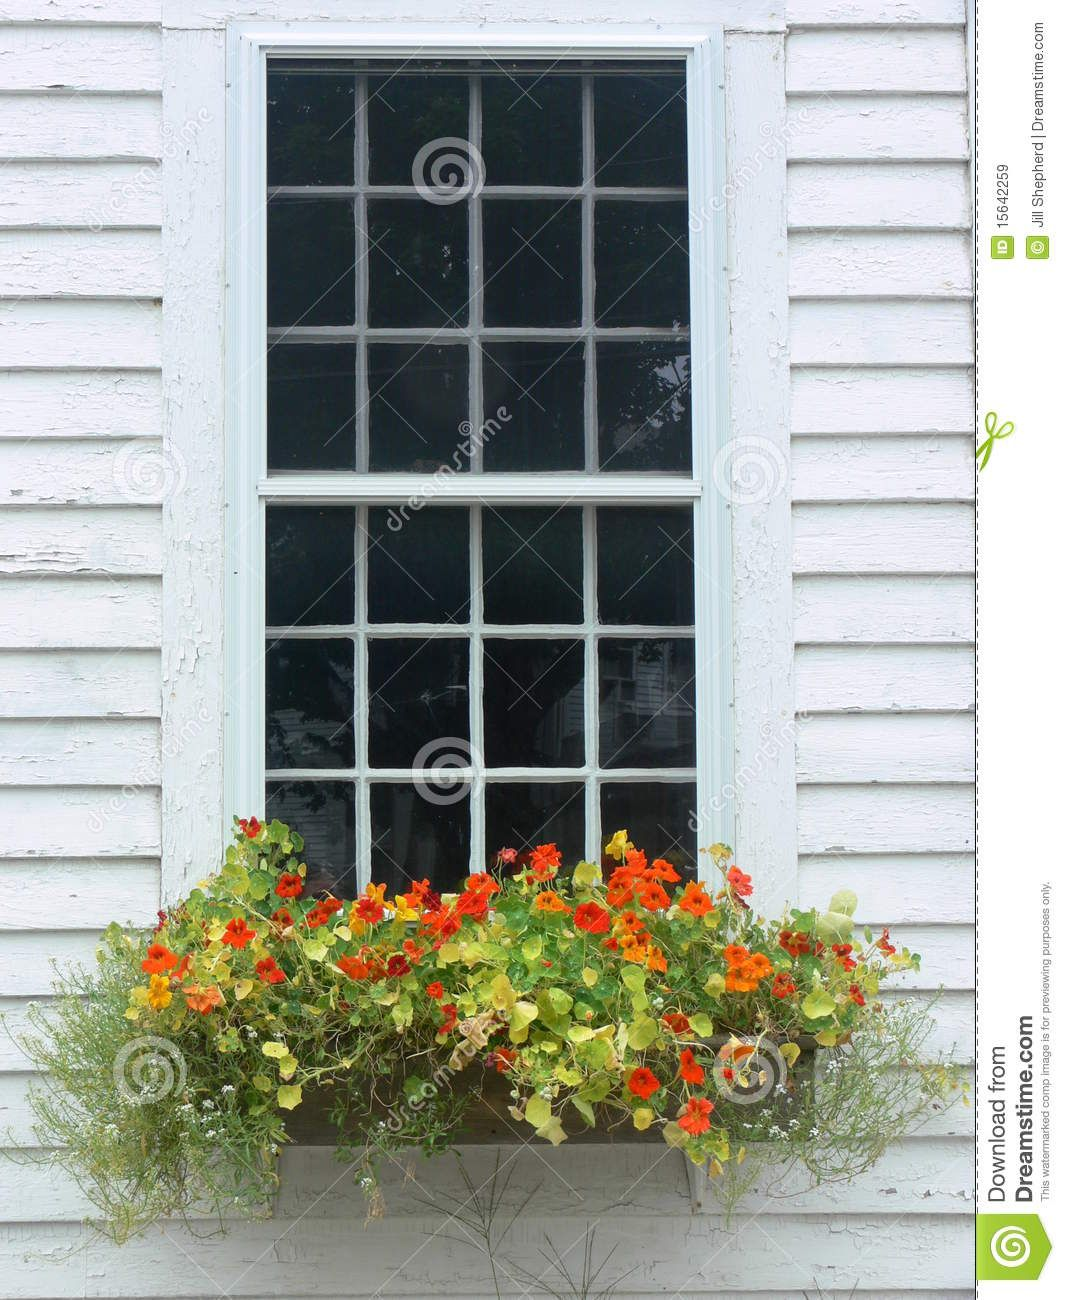 Wedding Flowers Jersey Channel Islands: Nasturtium In Window Box - Bing Images